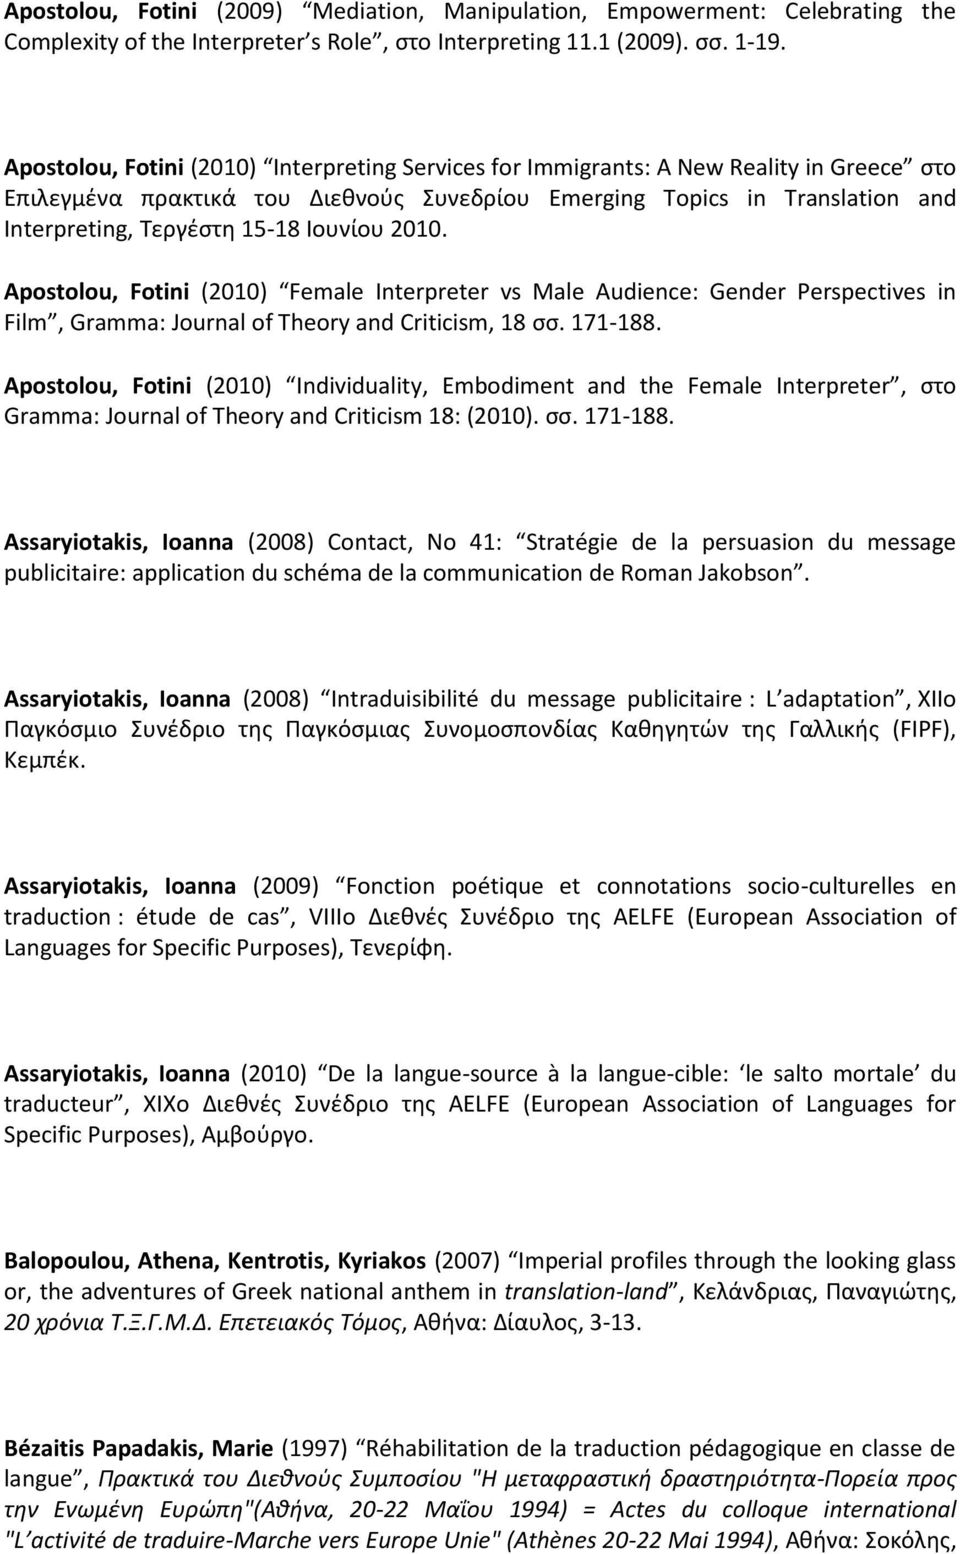 Ιουνίου 2010. Apostolou, Fotini (2010) Female Interpreter vs Male Audience: Gender Perspectives in Film, Gramma: Journal of Theory and Criticism, 18 σσ. 171-188.